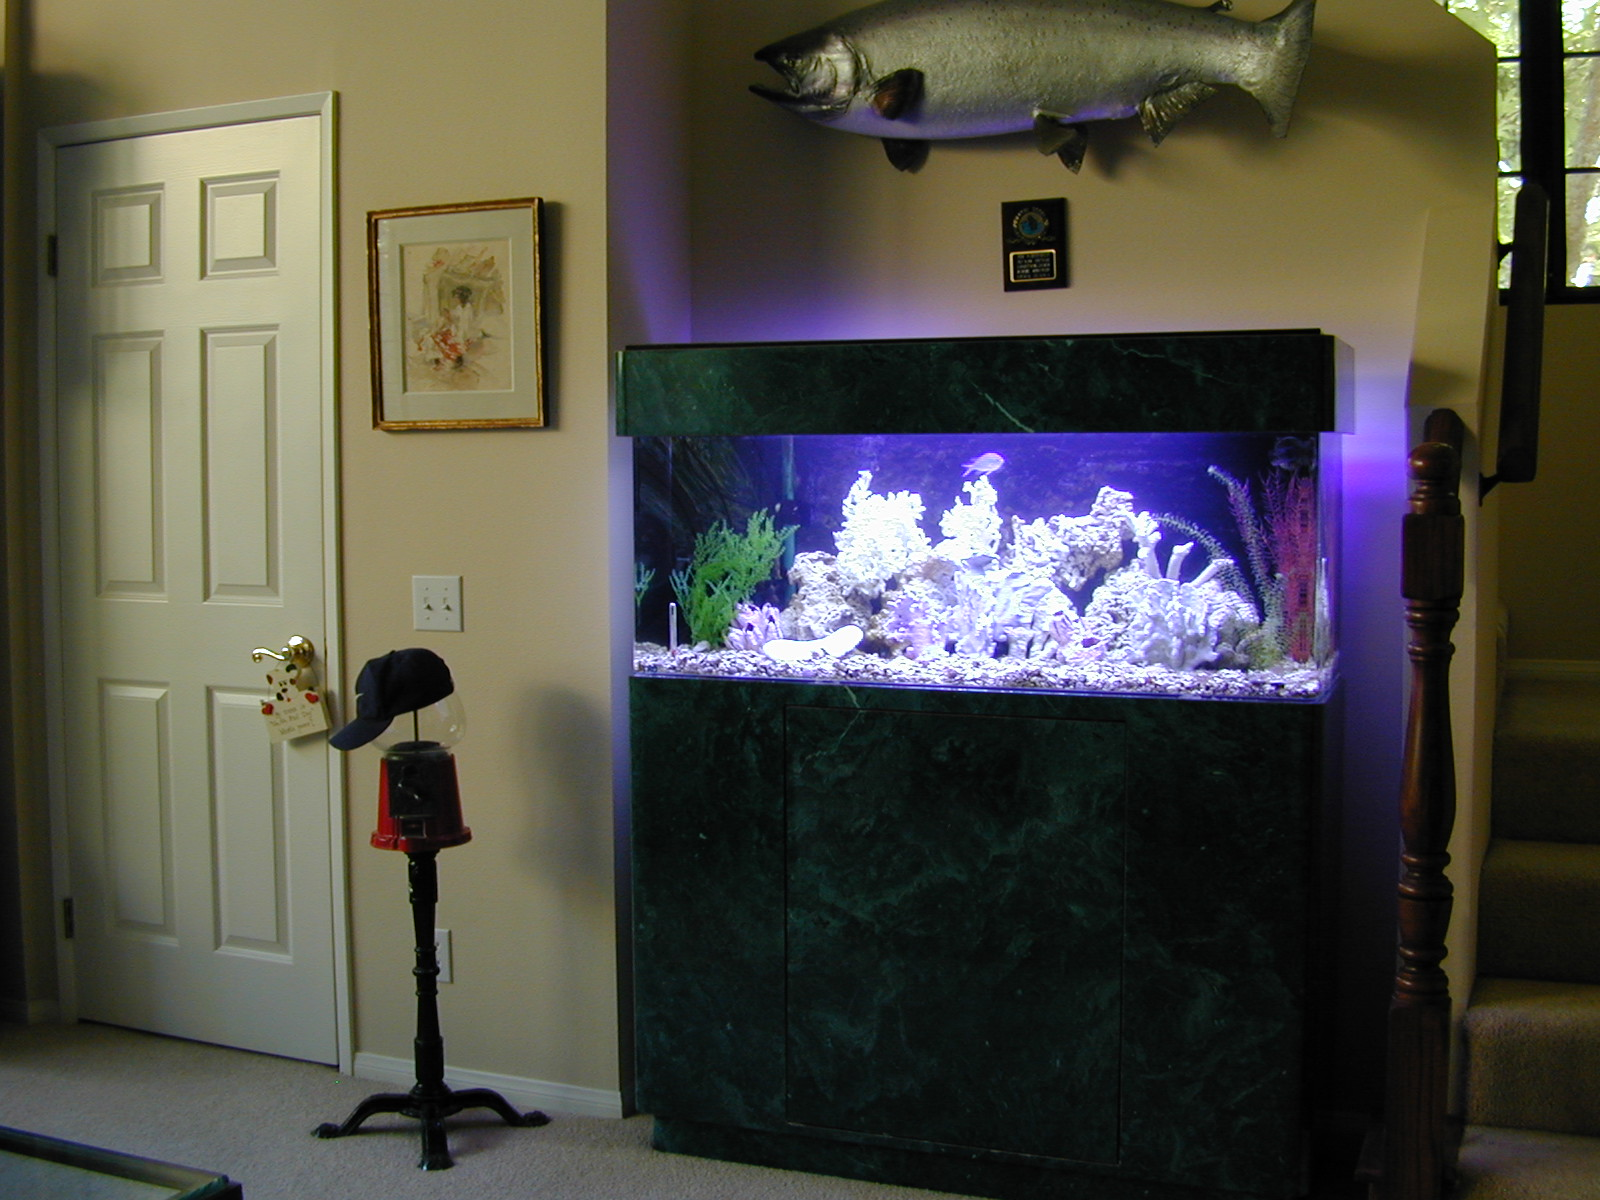 60 Gallon Marine Fish Tank, Aquarium Design, Marine Aquariums And Coral  Reef Aquarium Tank, Stand, Canopy, And Aquarium Filter System Part 47